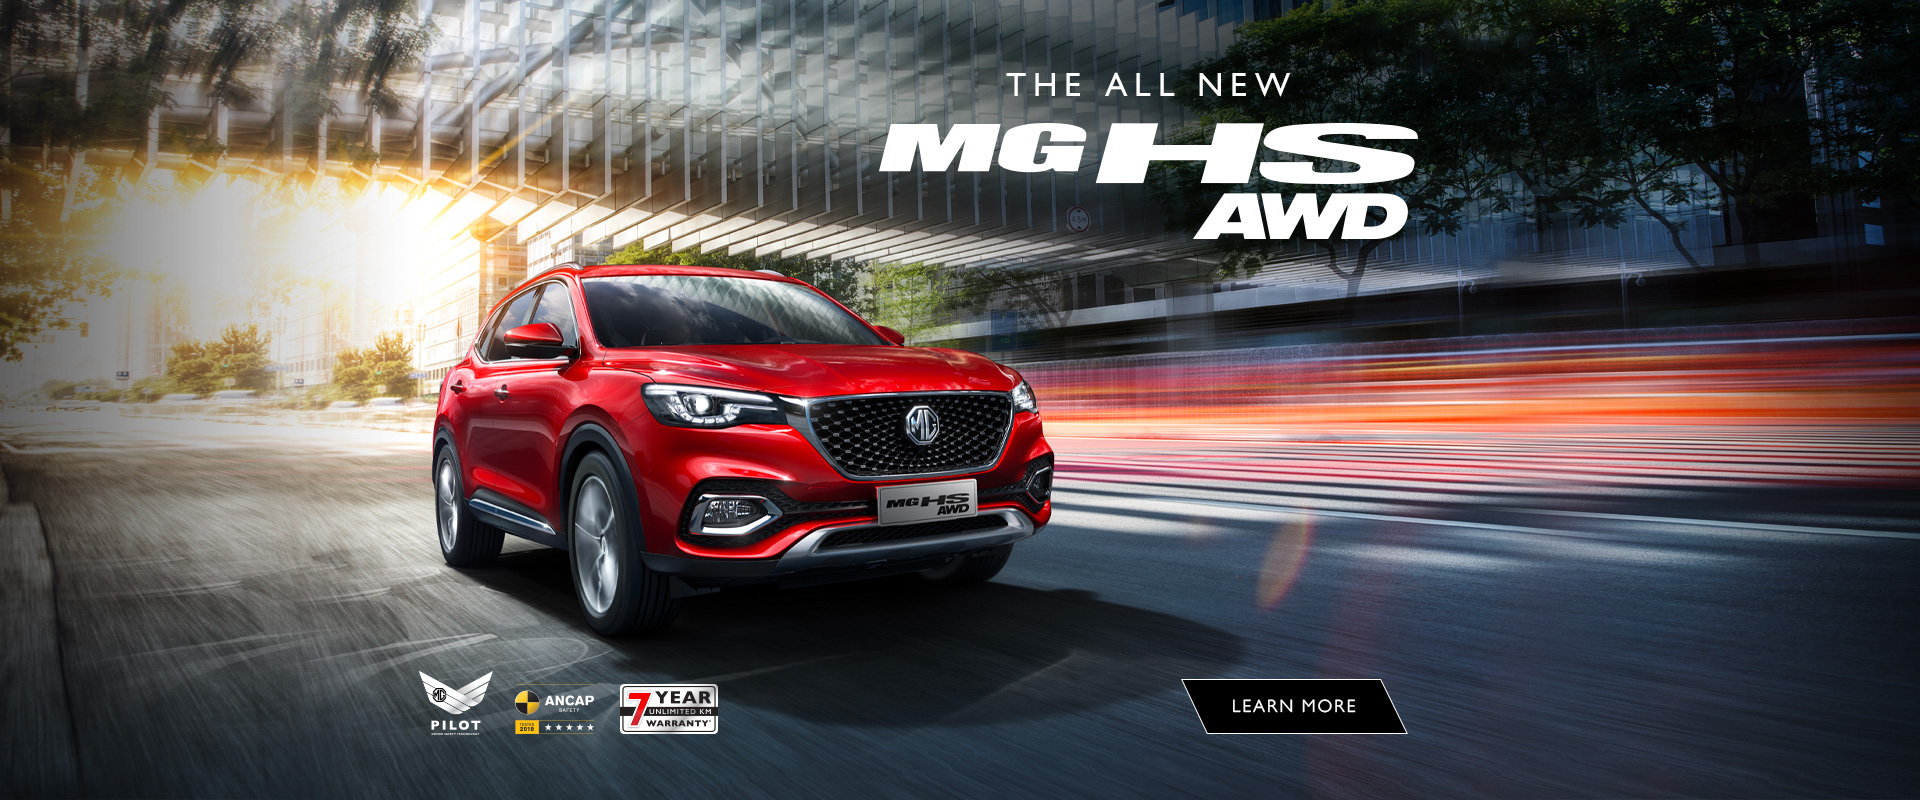 MG HS All Wheel Drive SUV